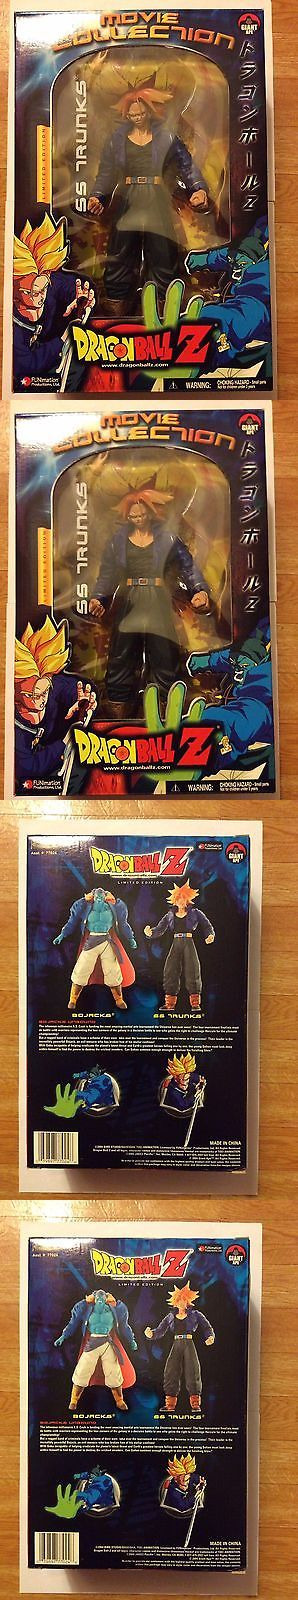 DragonBall Z 7117: Dragon Ball Z Limited Edition Movie Collection Series 9 Ss Trunks 9 Inch Figure -> BUY IT NOW ONLY: $32.98 on eBay!